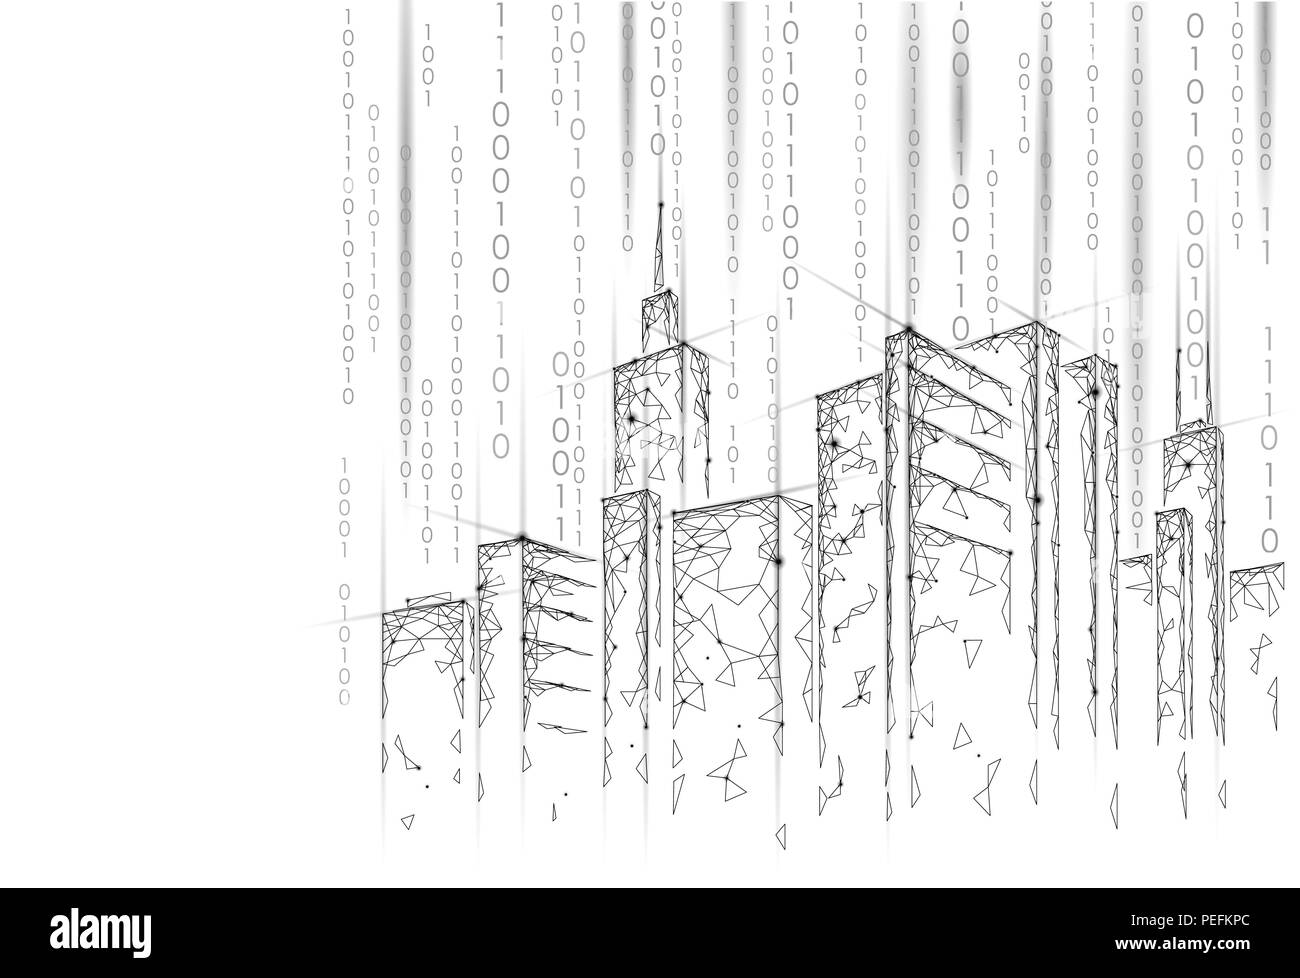 hight resolution of low poly smart city 3d wire mesh intelligent building automation rh alamy com intelligent building system building automation system wiring diagram